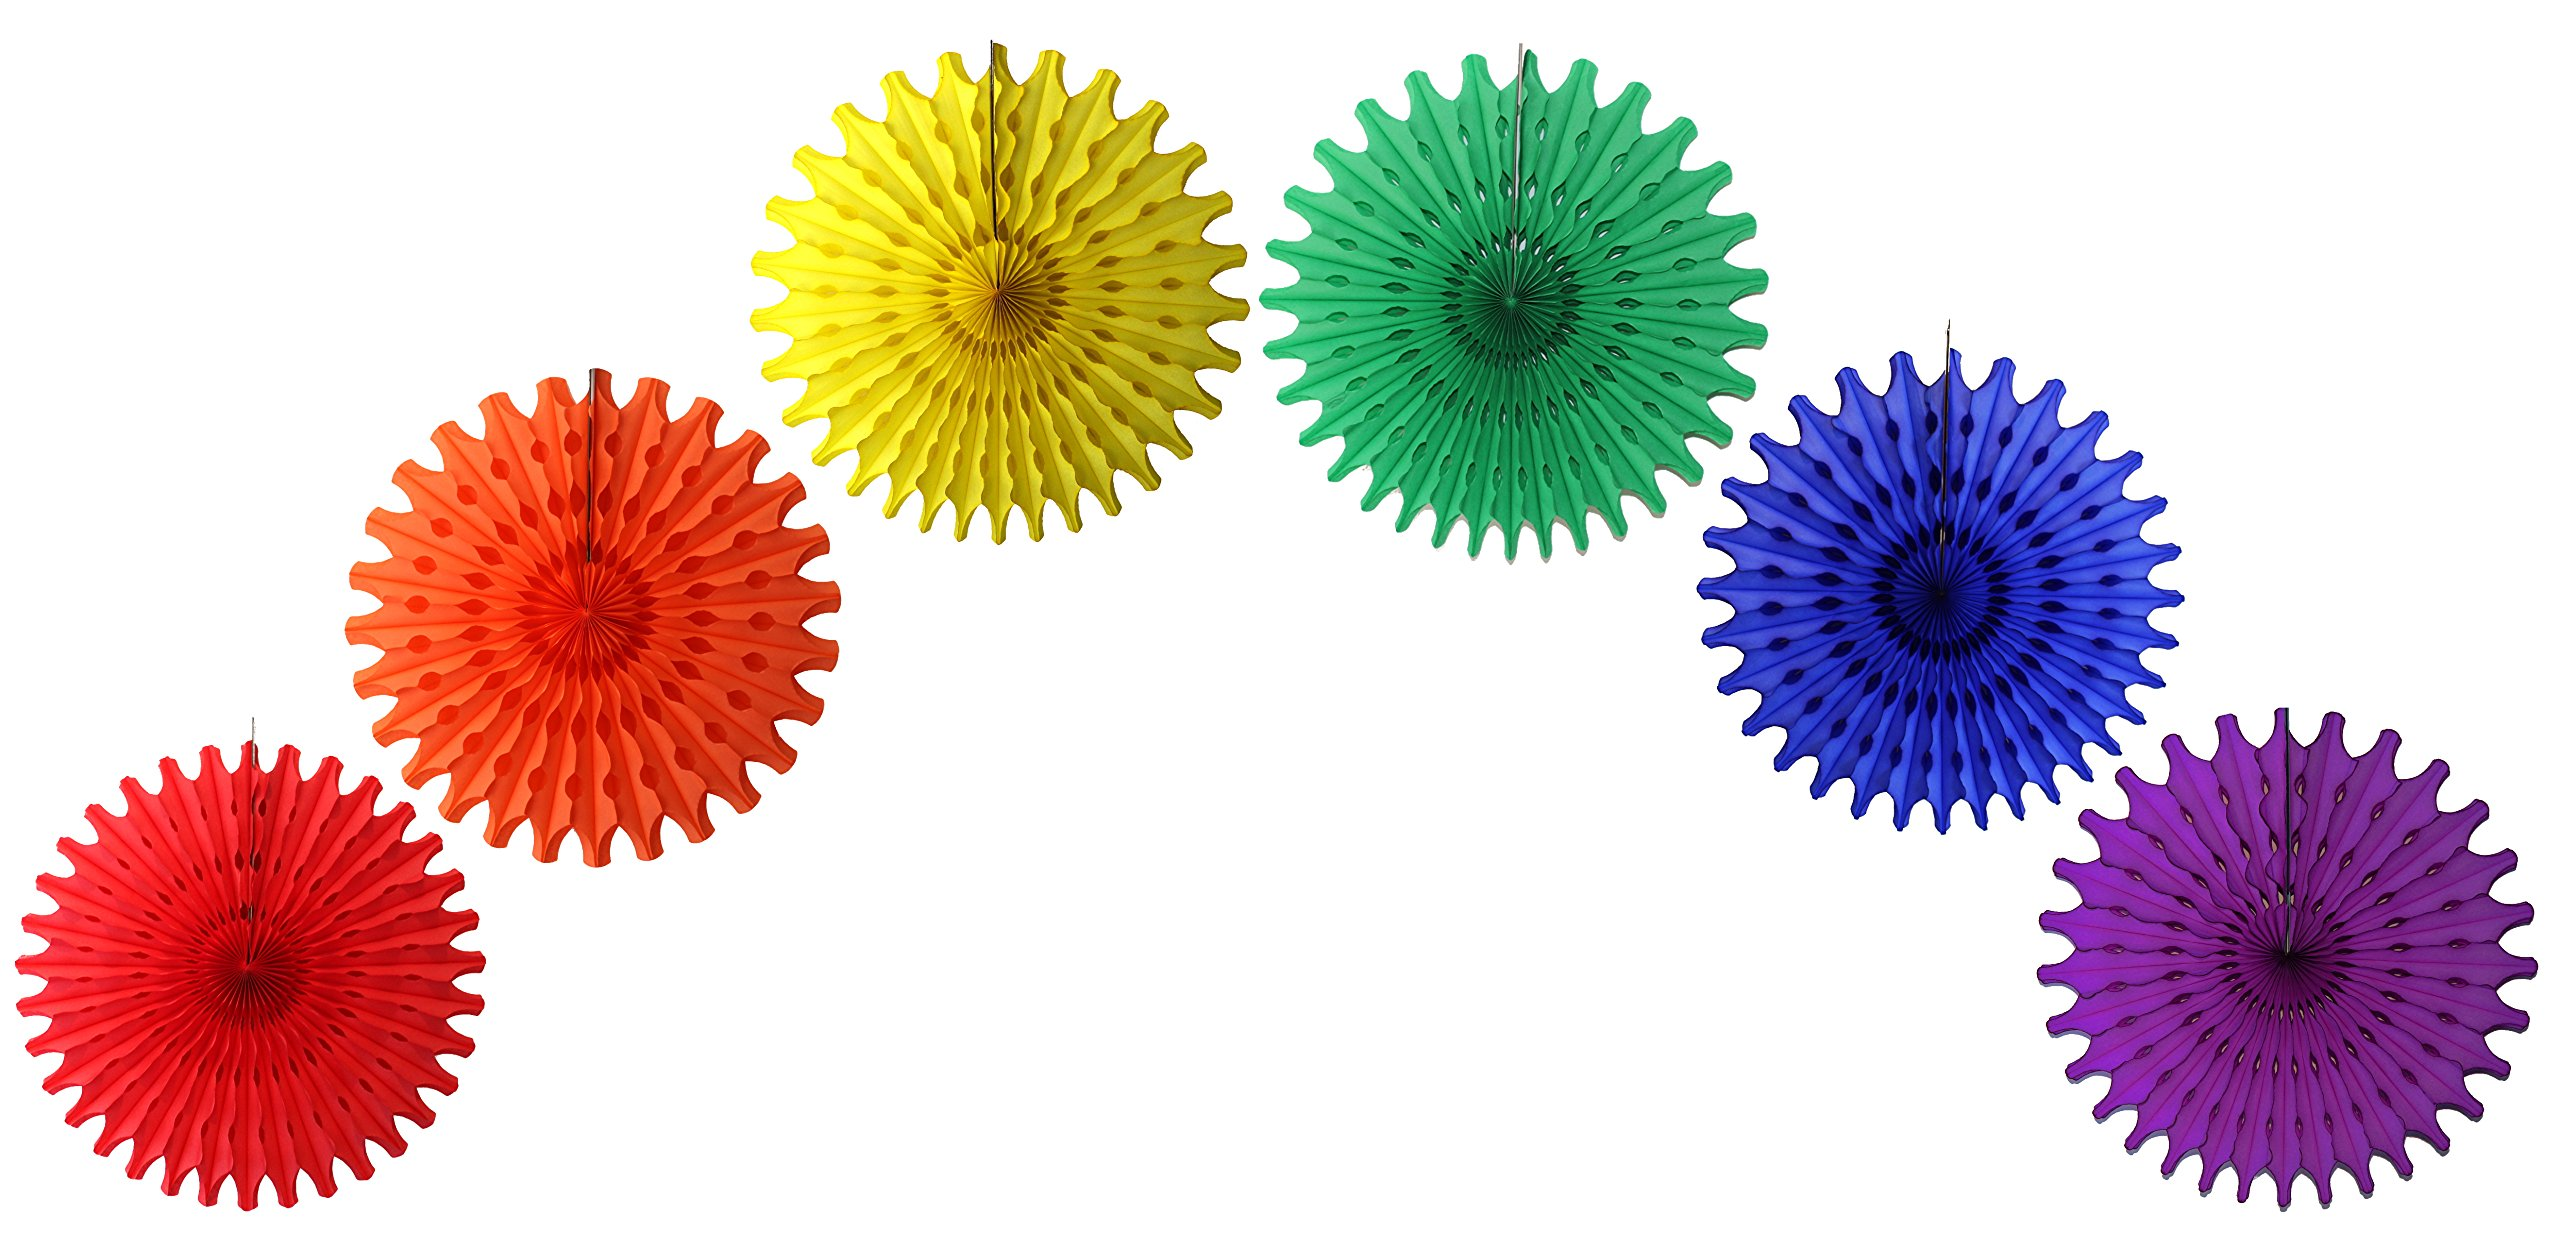 18 Inch Classic Rainbow Party Decorations (Six Fans) by Devra Party